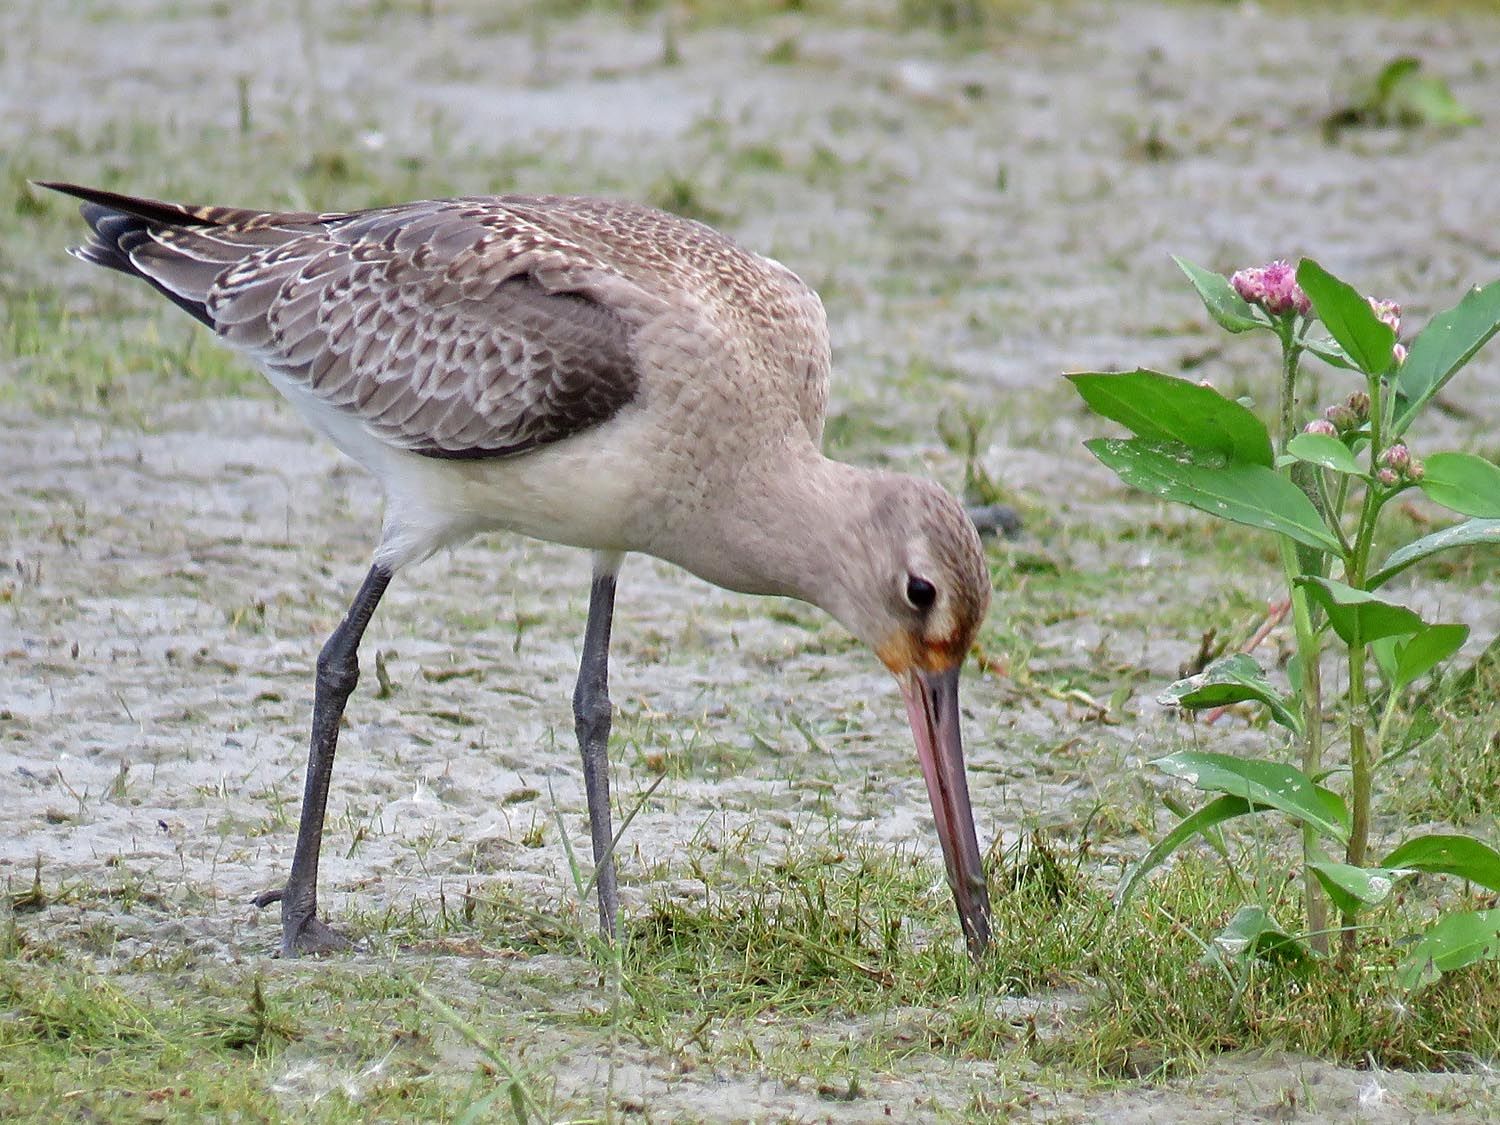 Hudsonian godwit, Jamaica Bay Wildlife Refuge, October 11